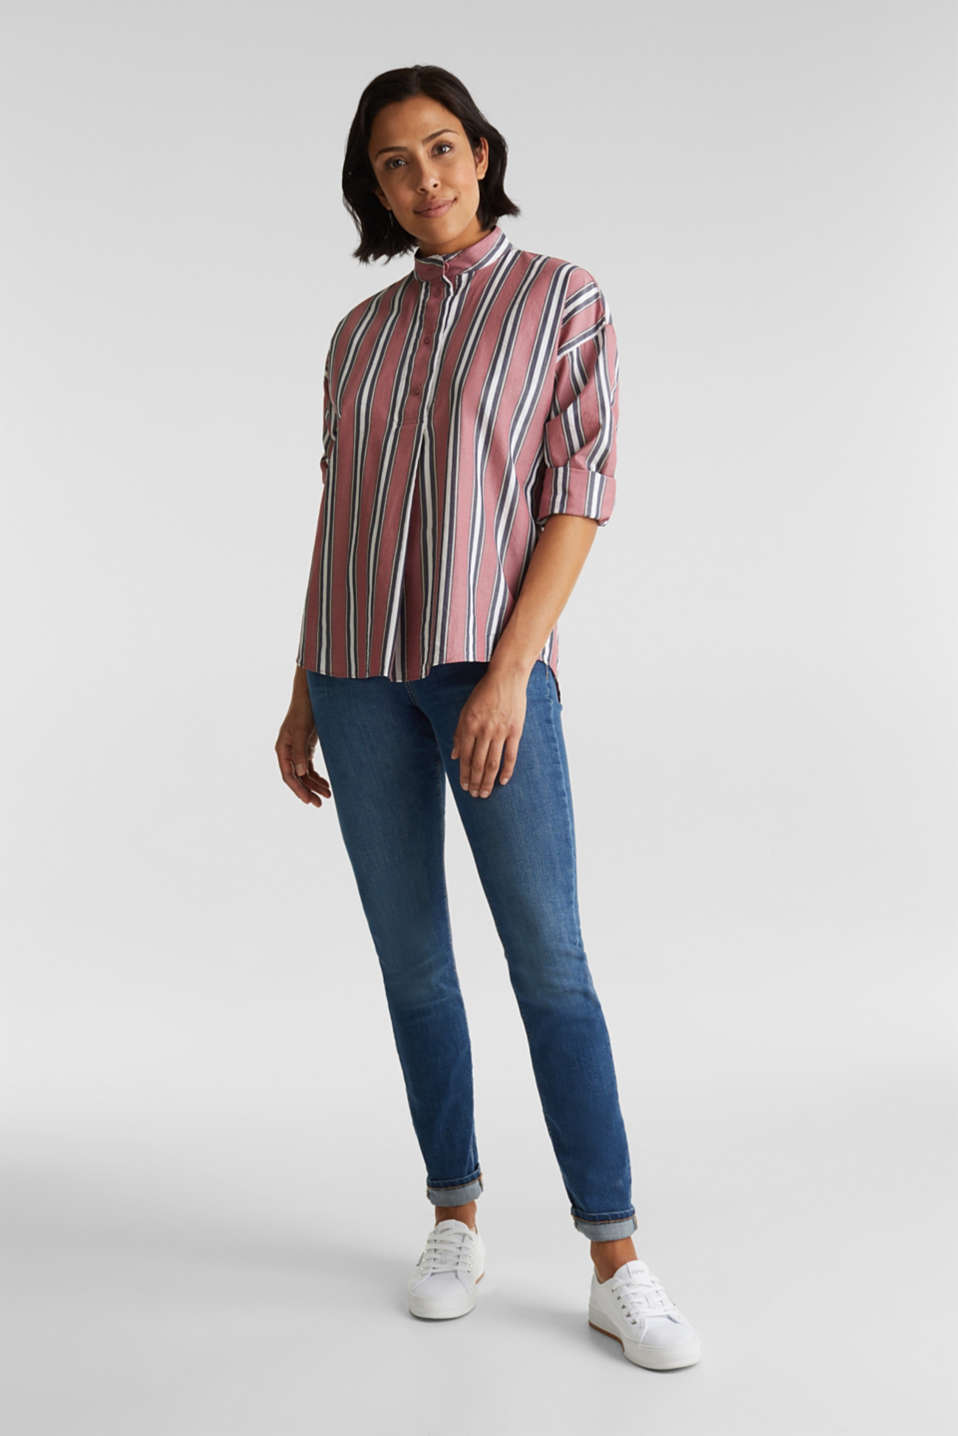 Slip-on blouse with a stand-up collar, 100% cotton, BLUSH, detail image number 1